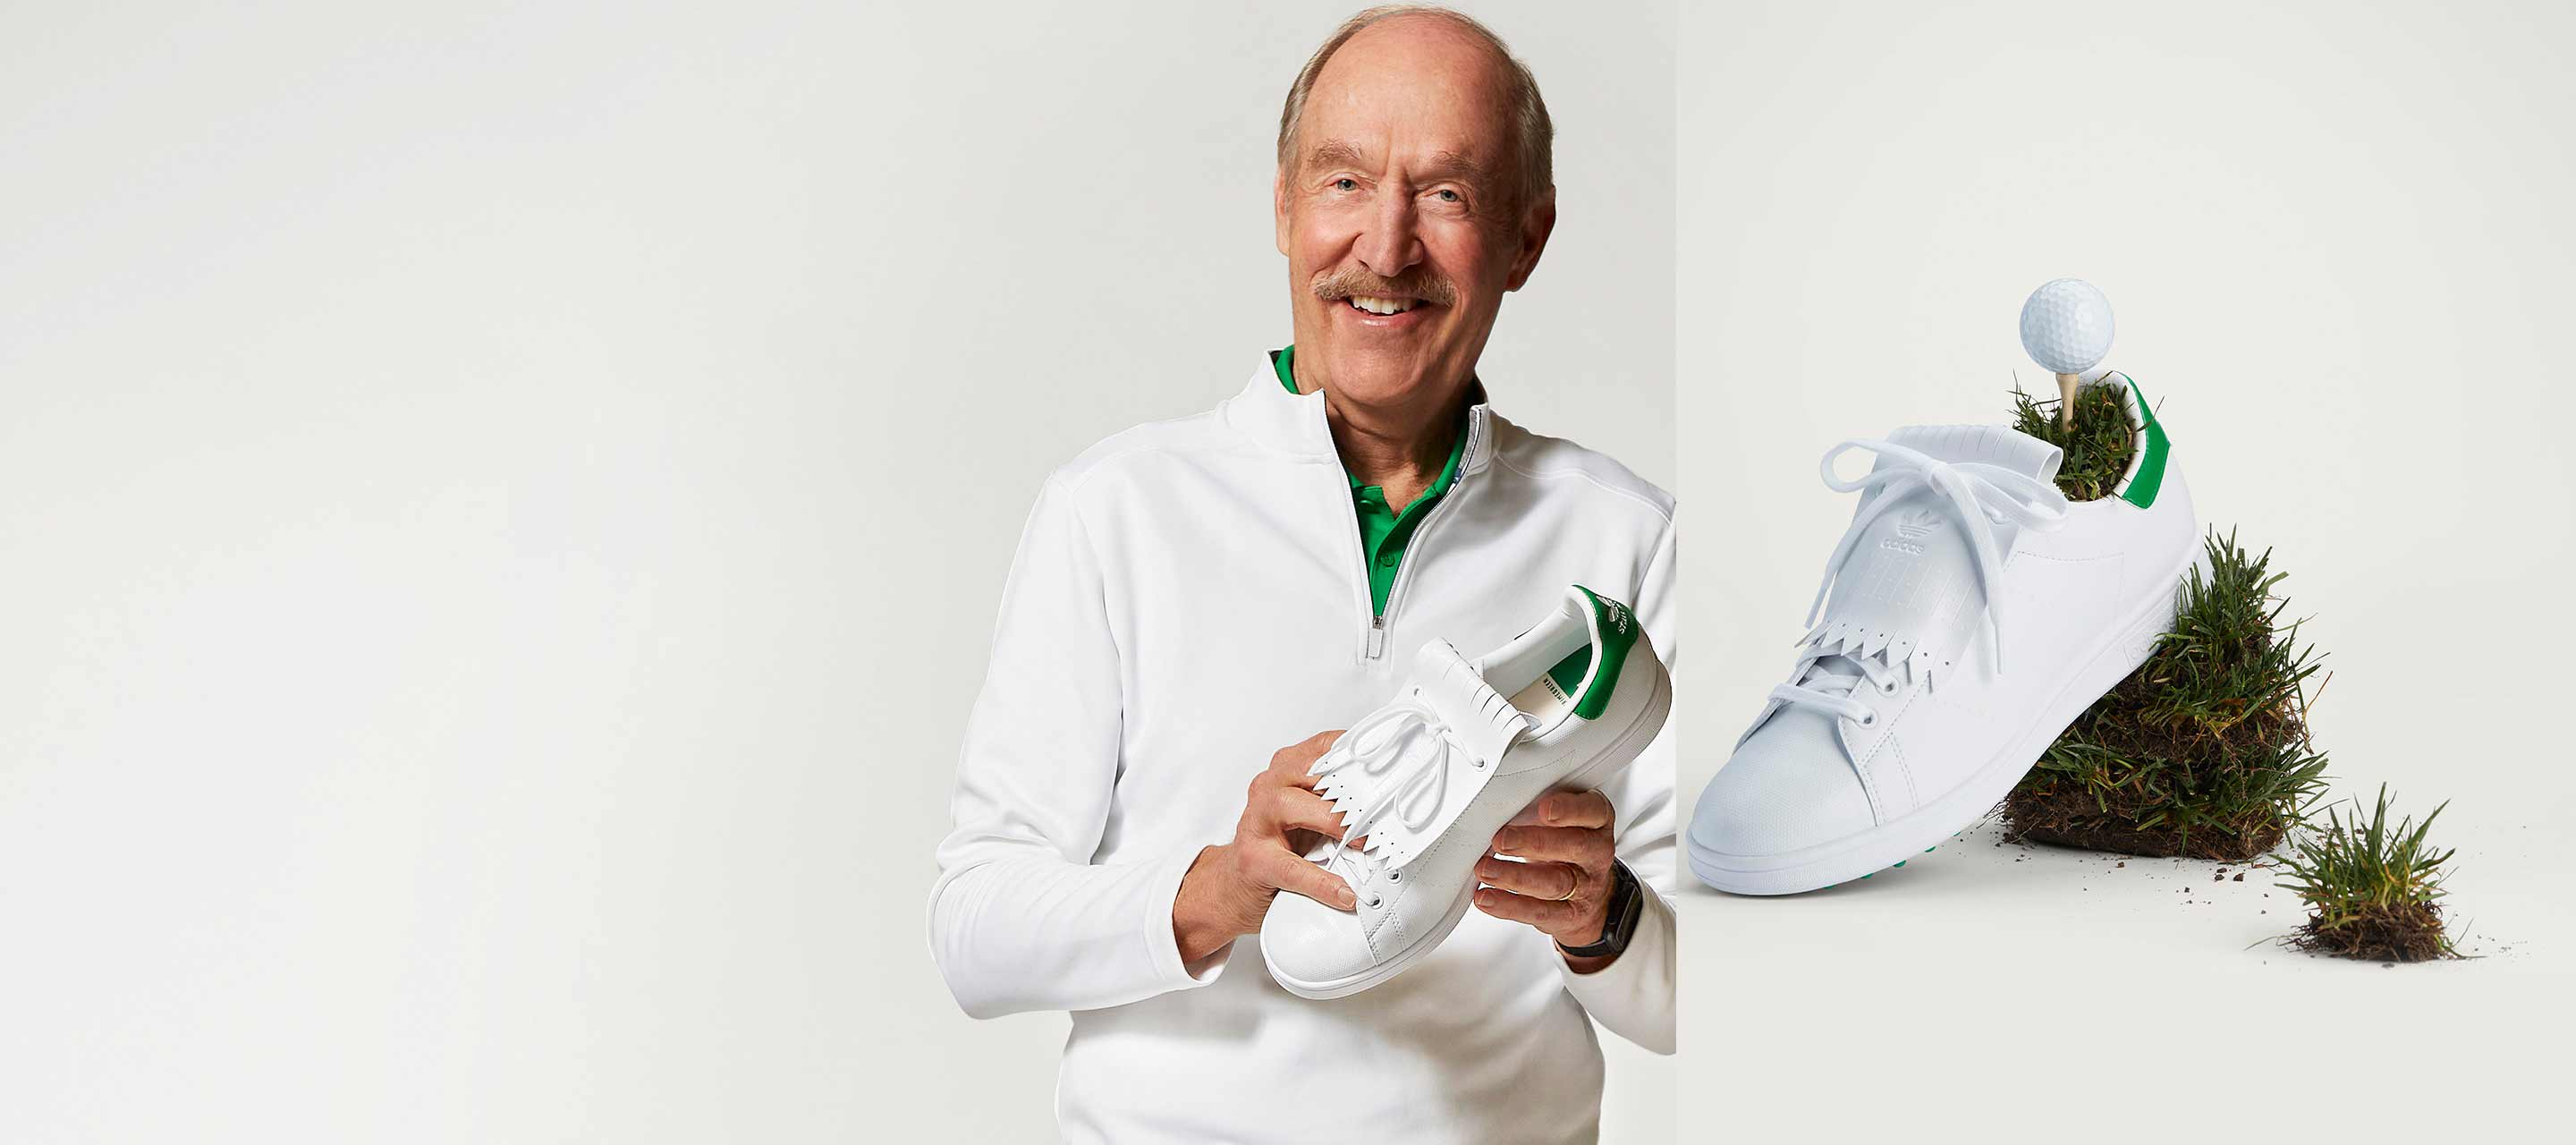 Stan Smith holding a Stan Smith golf shoe